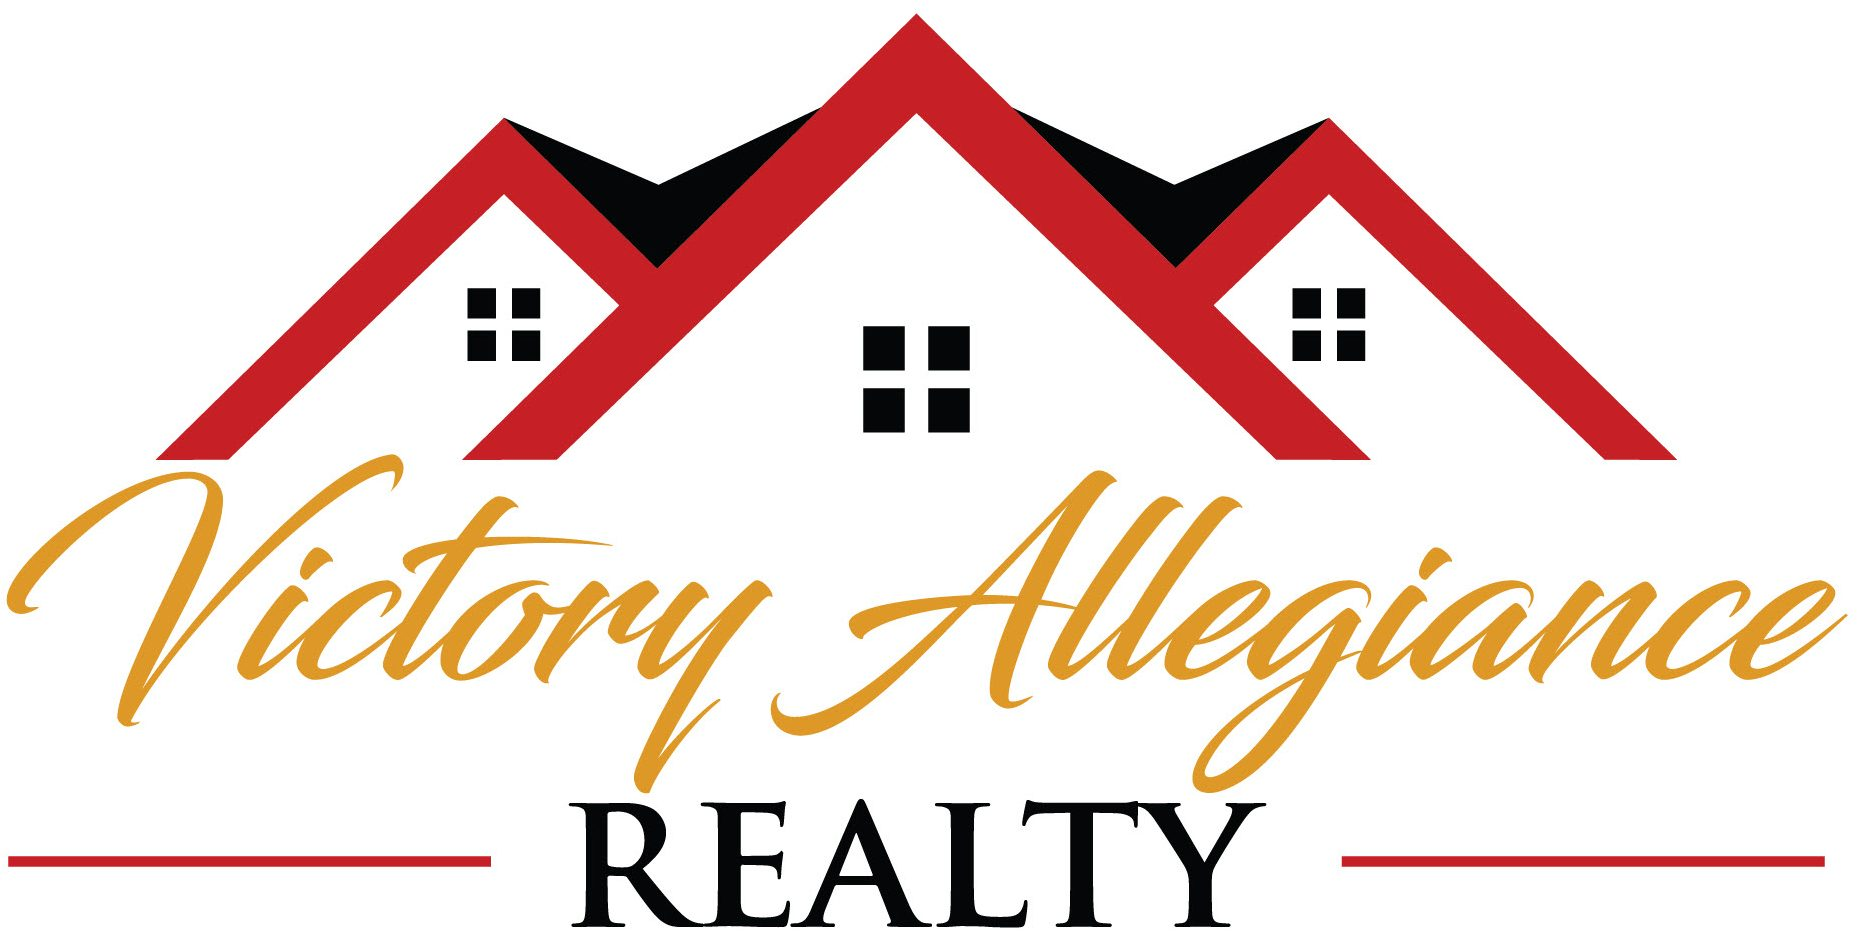 Victory Allegiance Realty